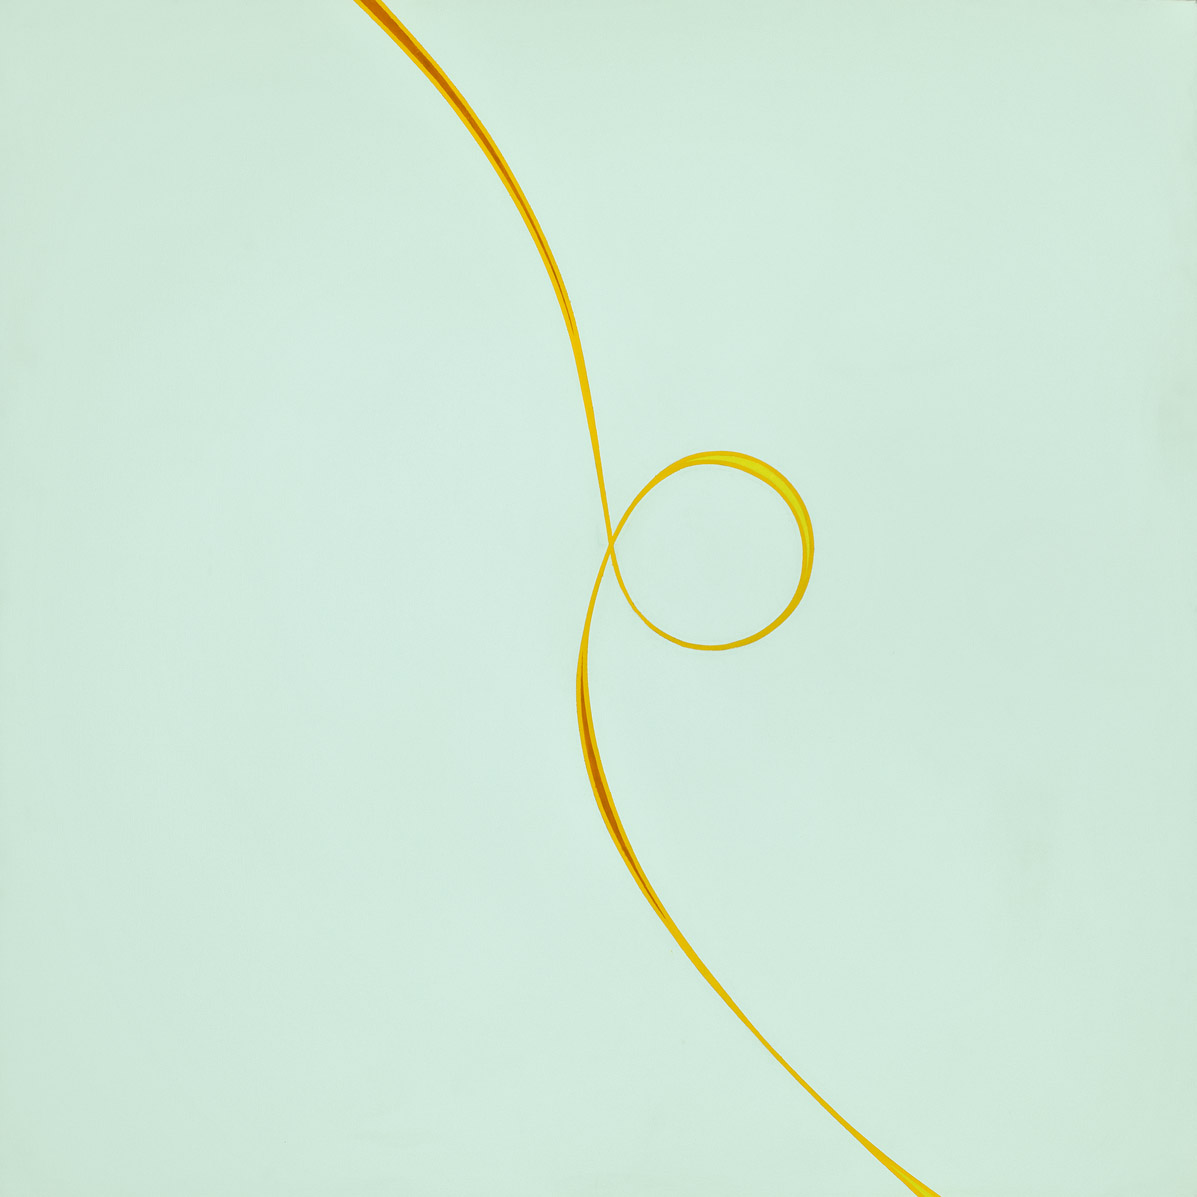 Untitled (February) , 1970  acrylic on canvas 60 x 60 inches; 152.4 x 152.4 centimeters